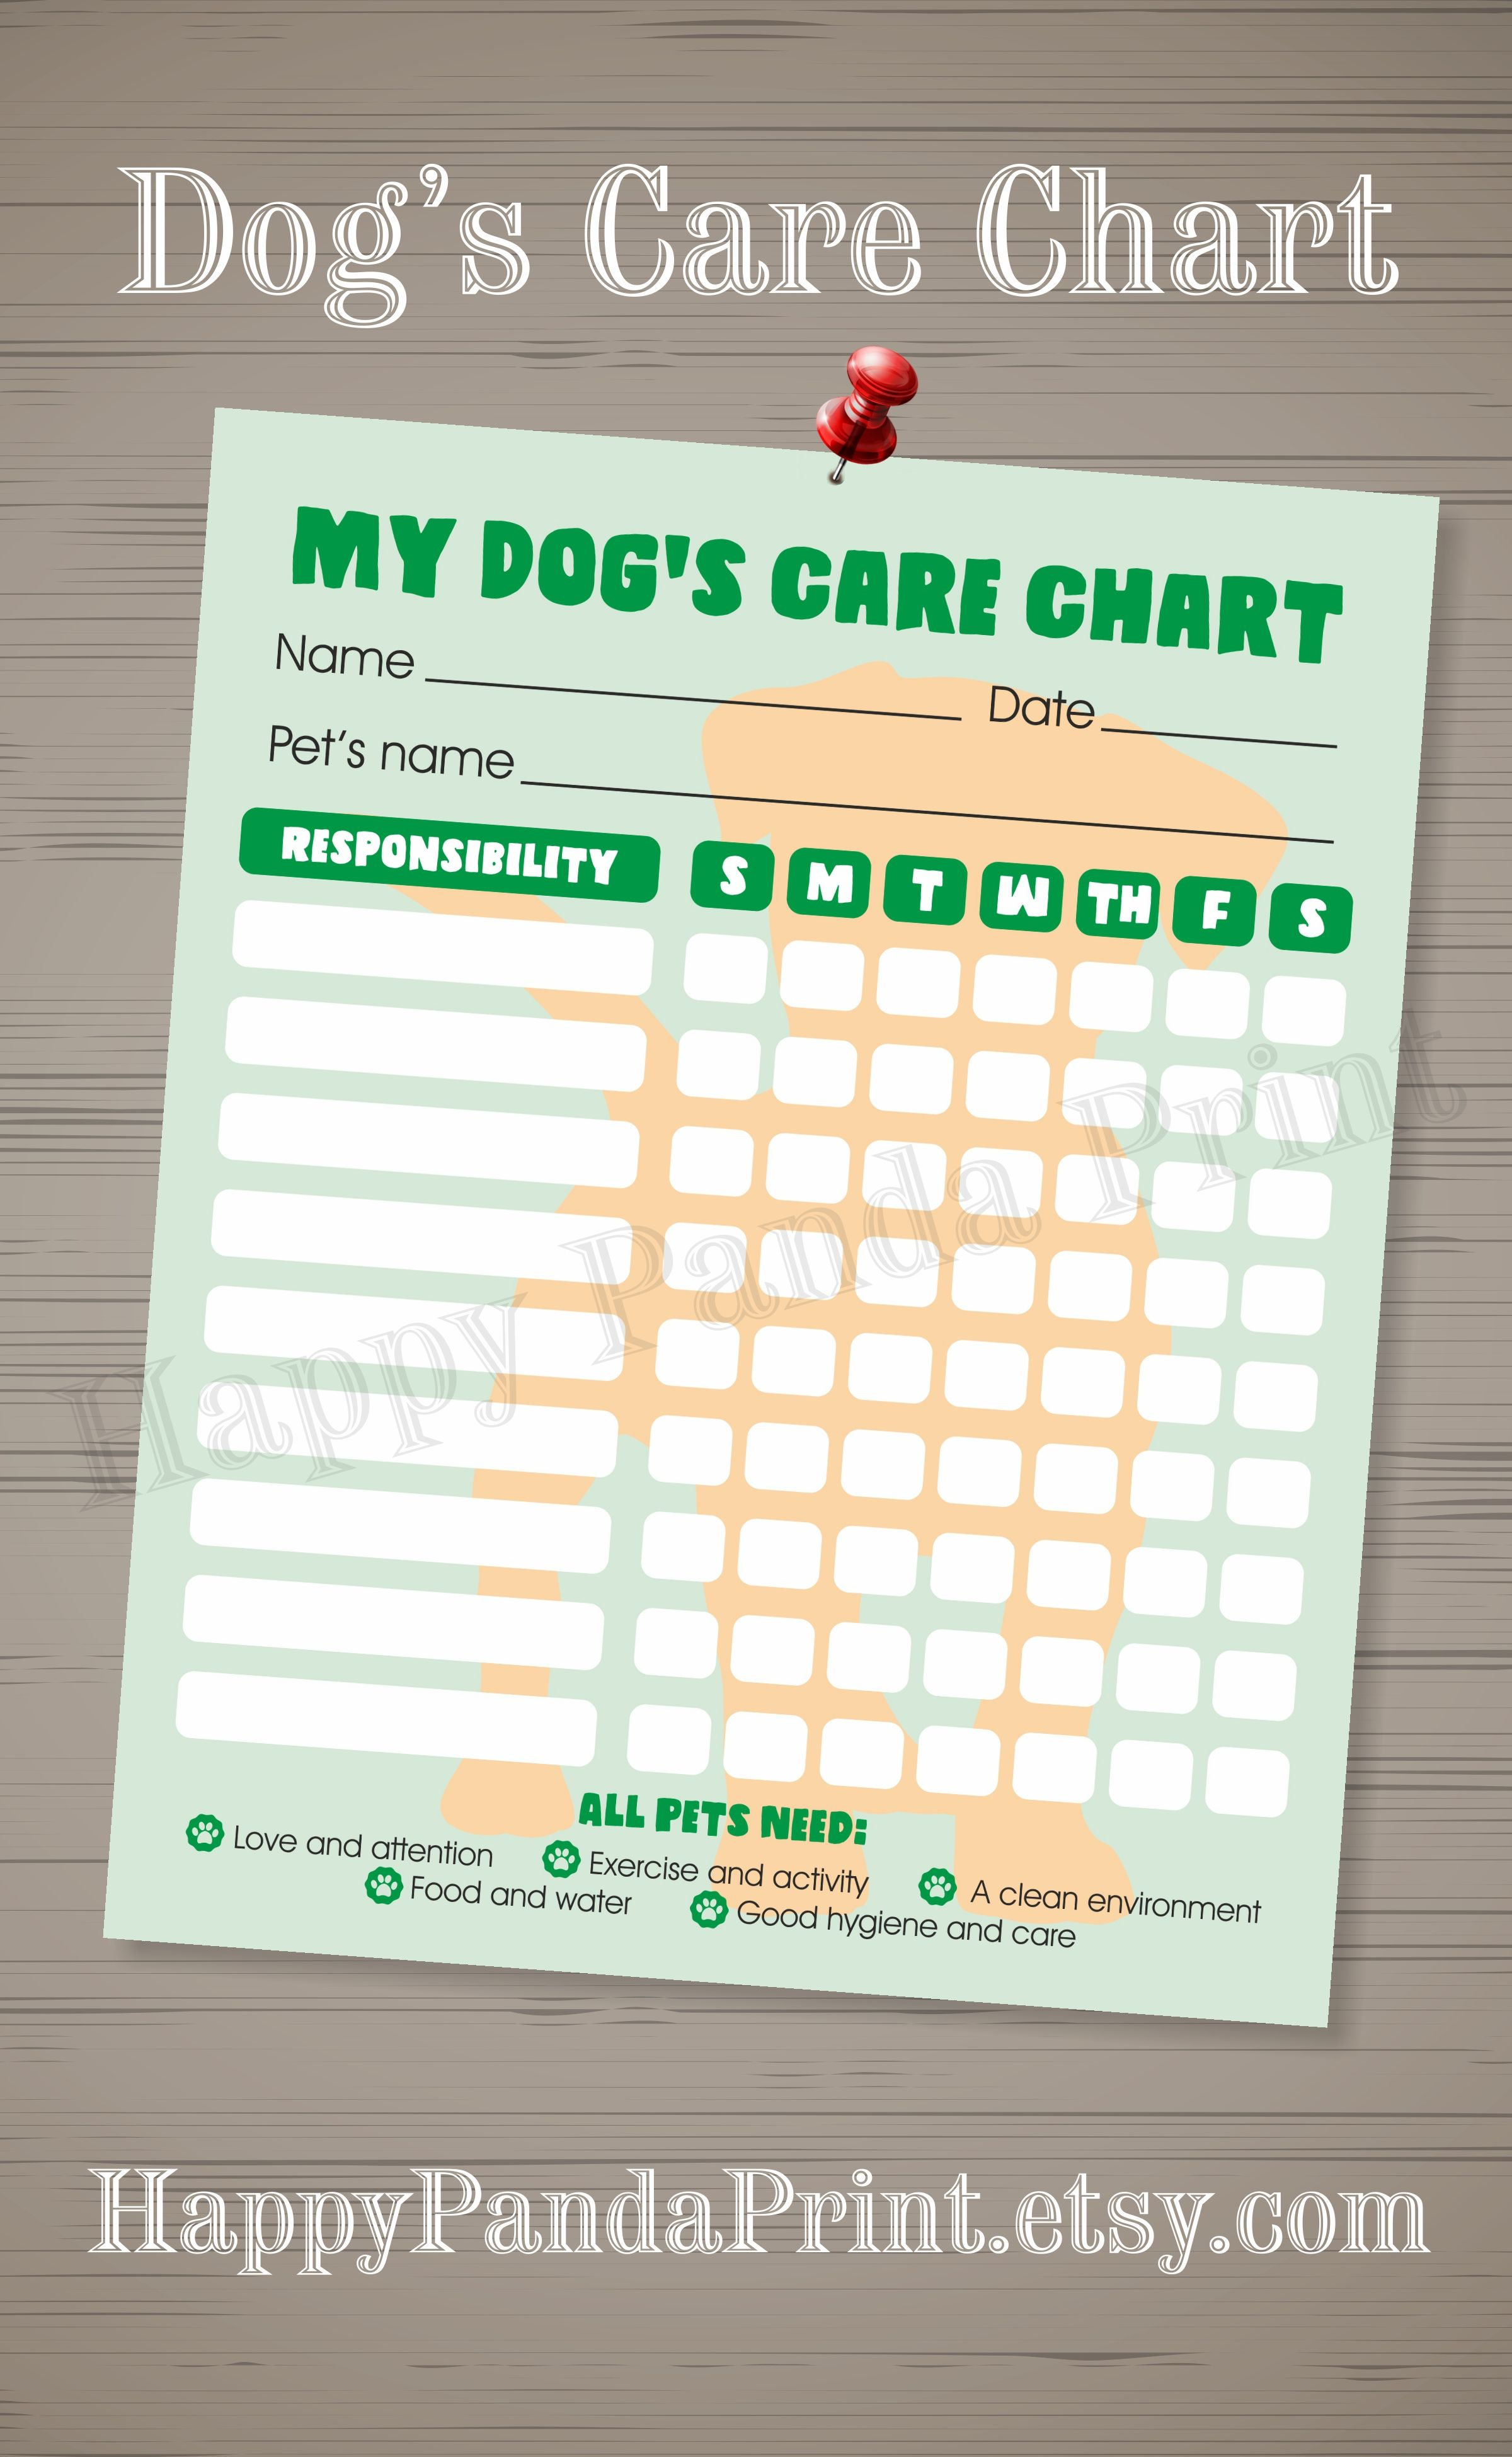 free printable charts and checklists. PET Responsibility Chart, Dog Resposibility Care Checklist, Free Printable Charts And Checklists